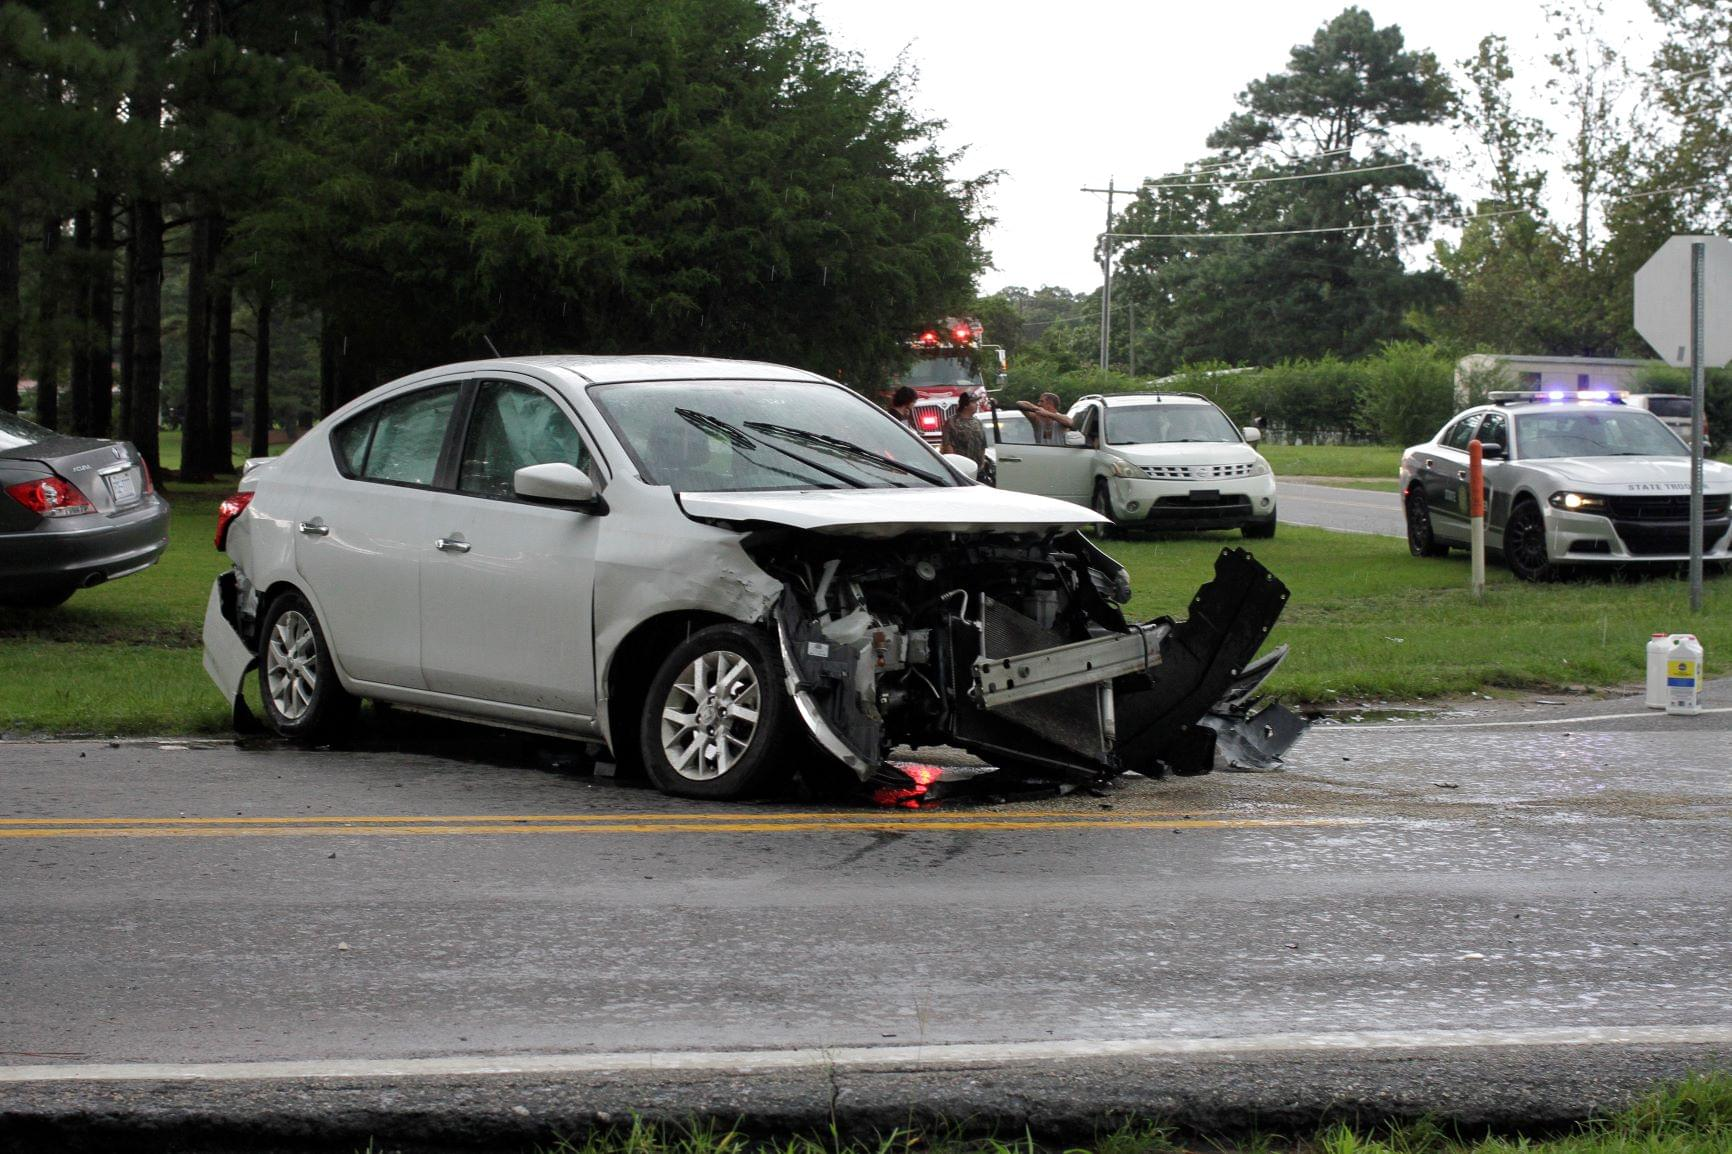 Two Transported To Hospital After Vehicles Collide (PHOTOS)